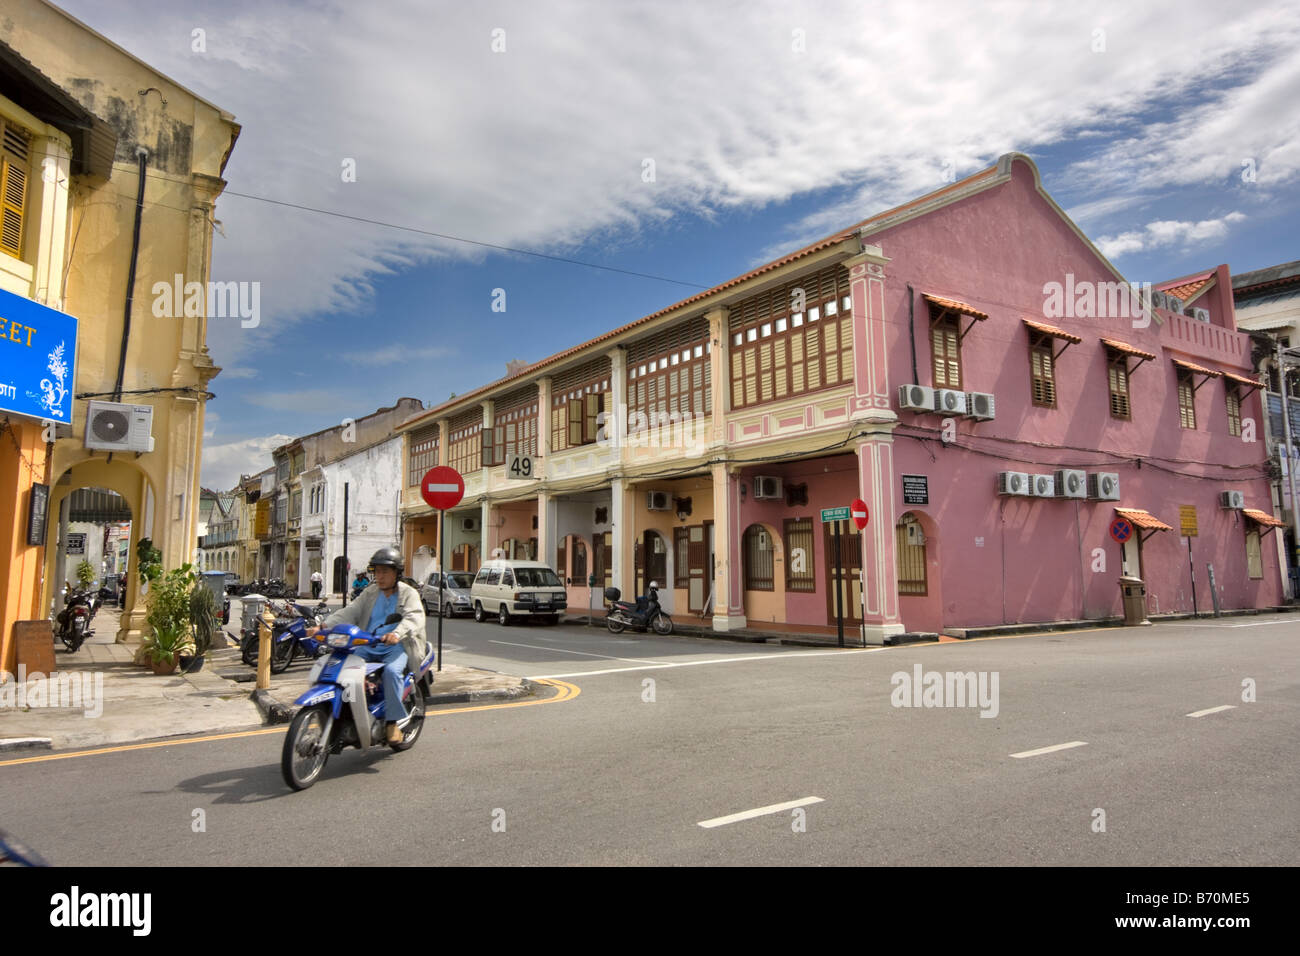 Row of shophouses on a typical street corner in Georgetown, Penang, Malaysia - Stock Image